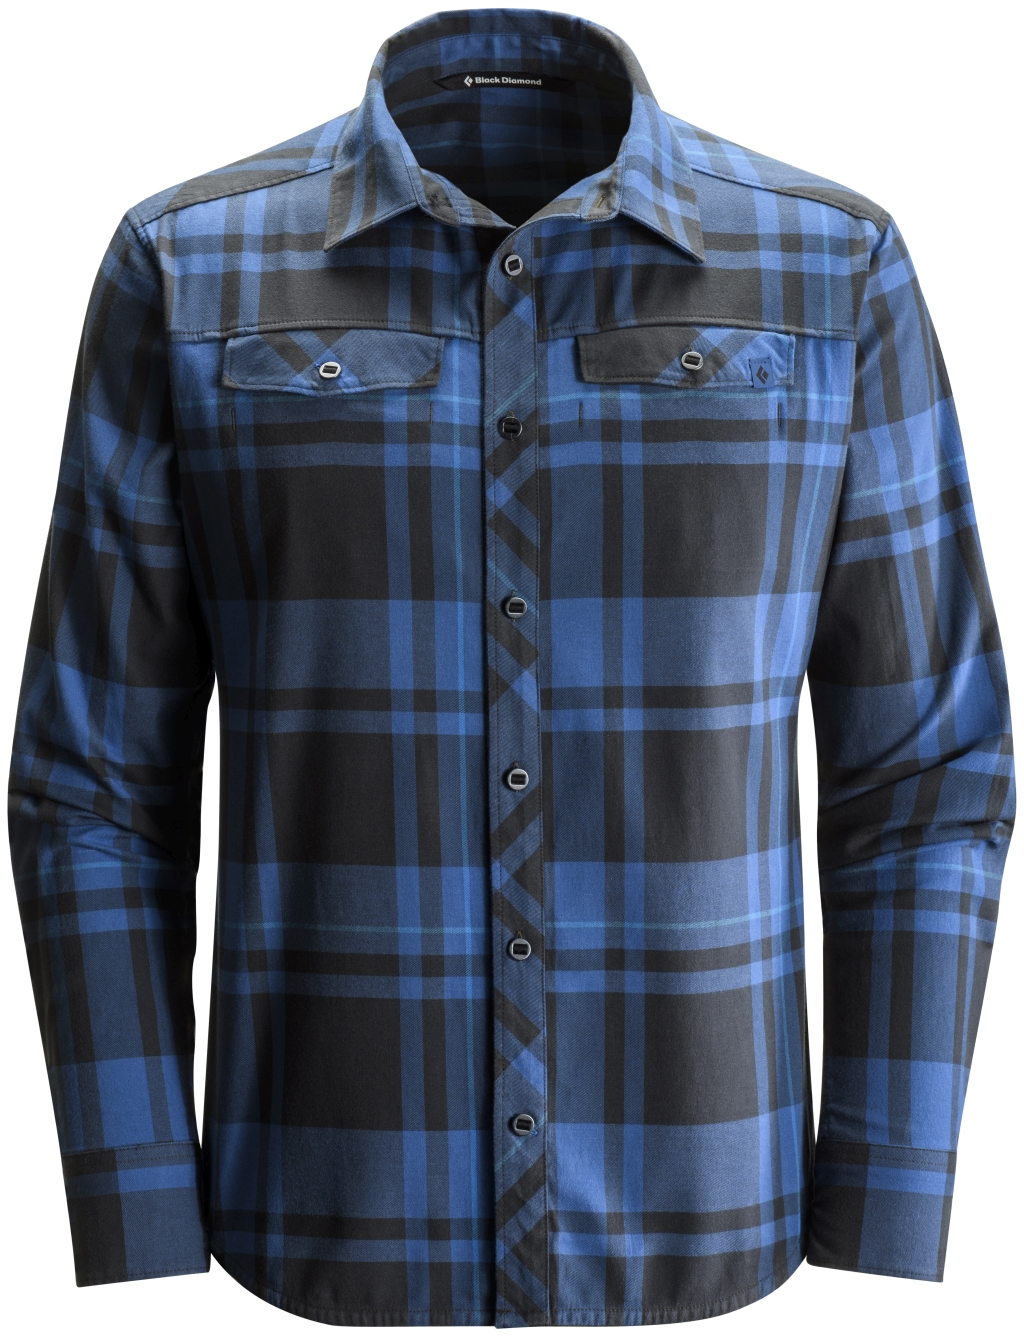 Black Diamond Long-Sleeve Stretch Technician Shirt Denim Black Plaid-30